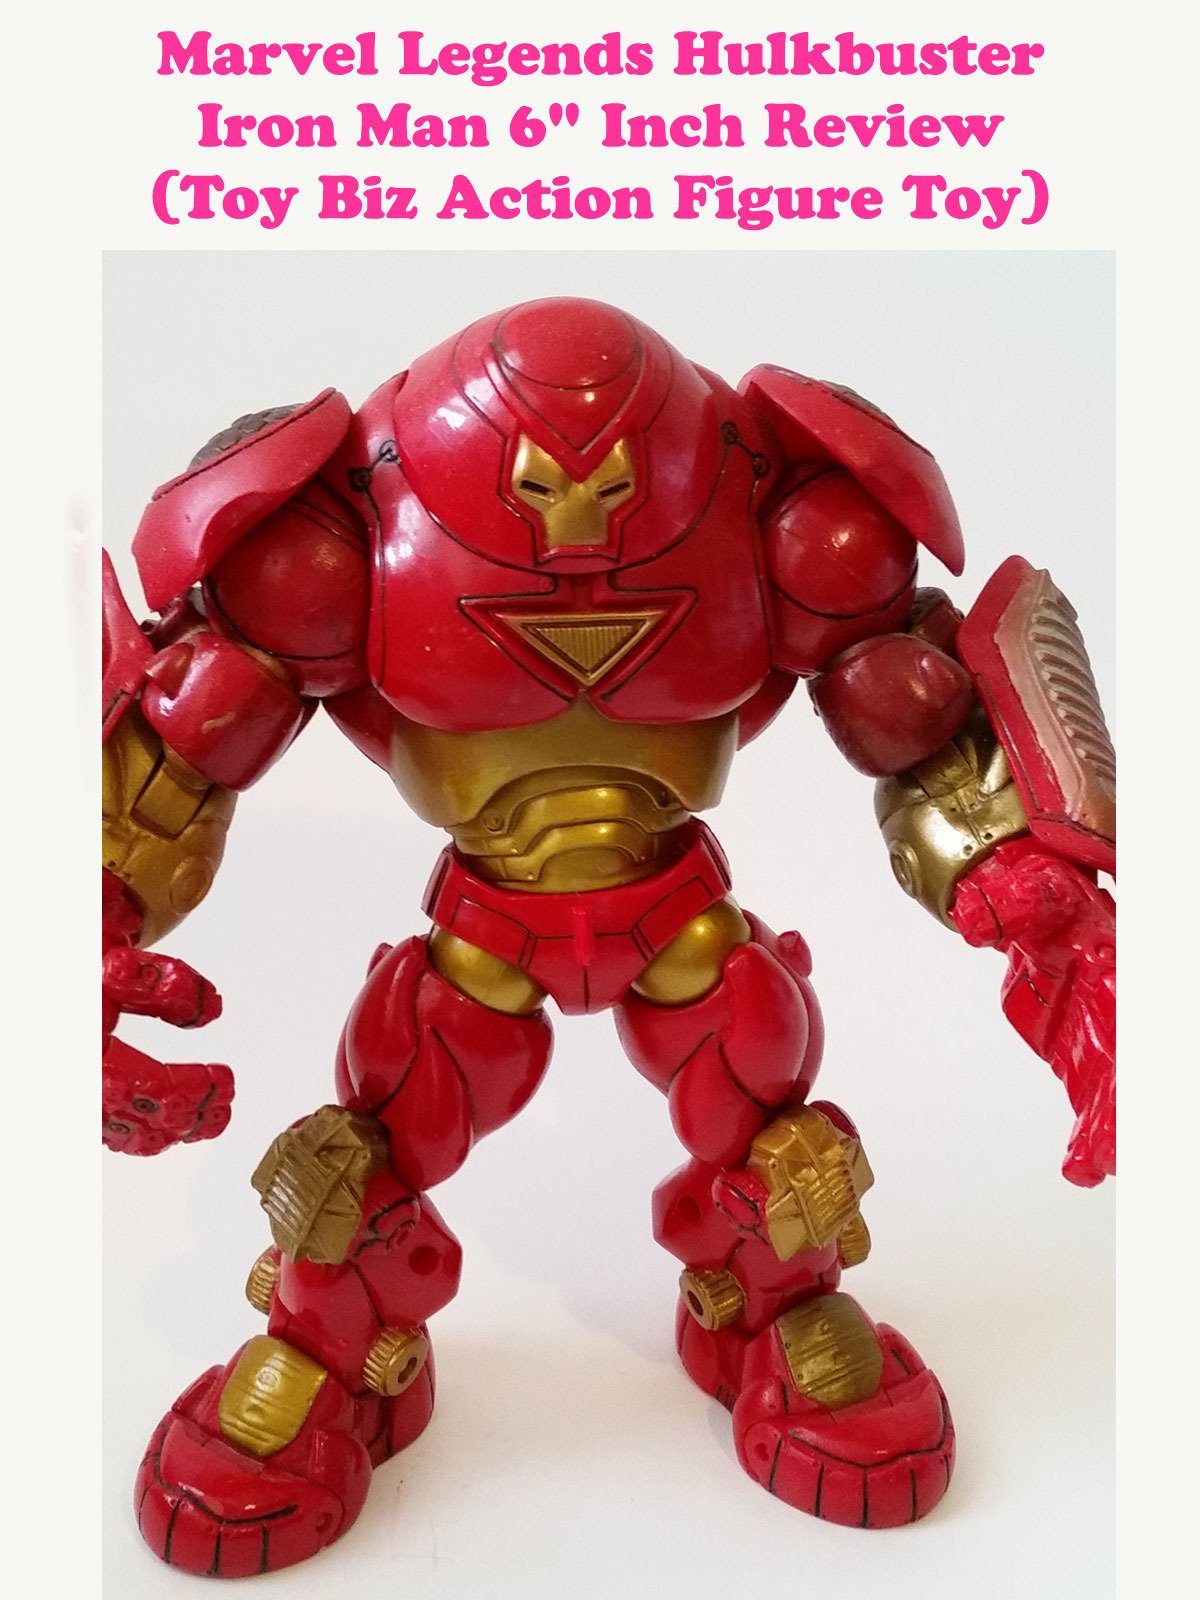 "Review: Marvel Legends Hulkbuster Iron Man 6"" Inch Review (Toy Biz Action Figure Toy)"